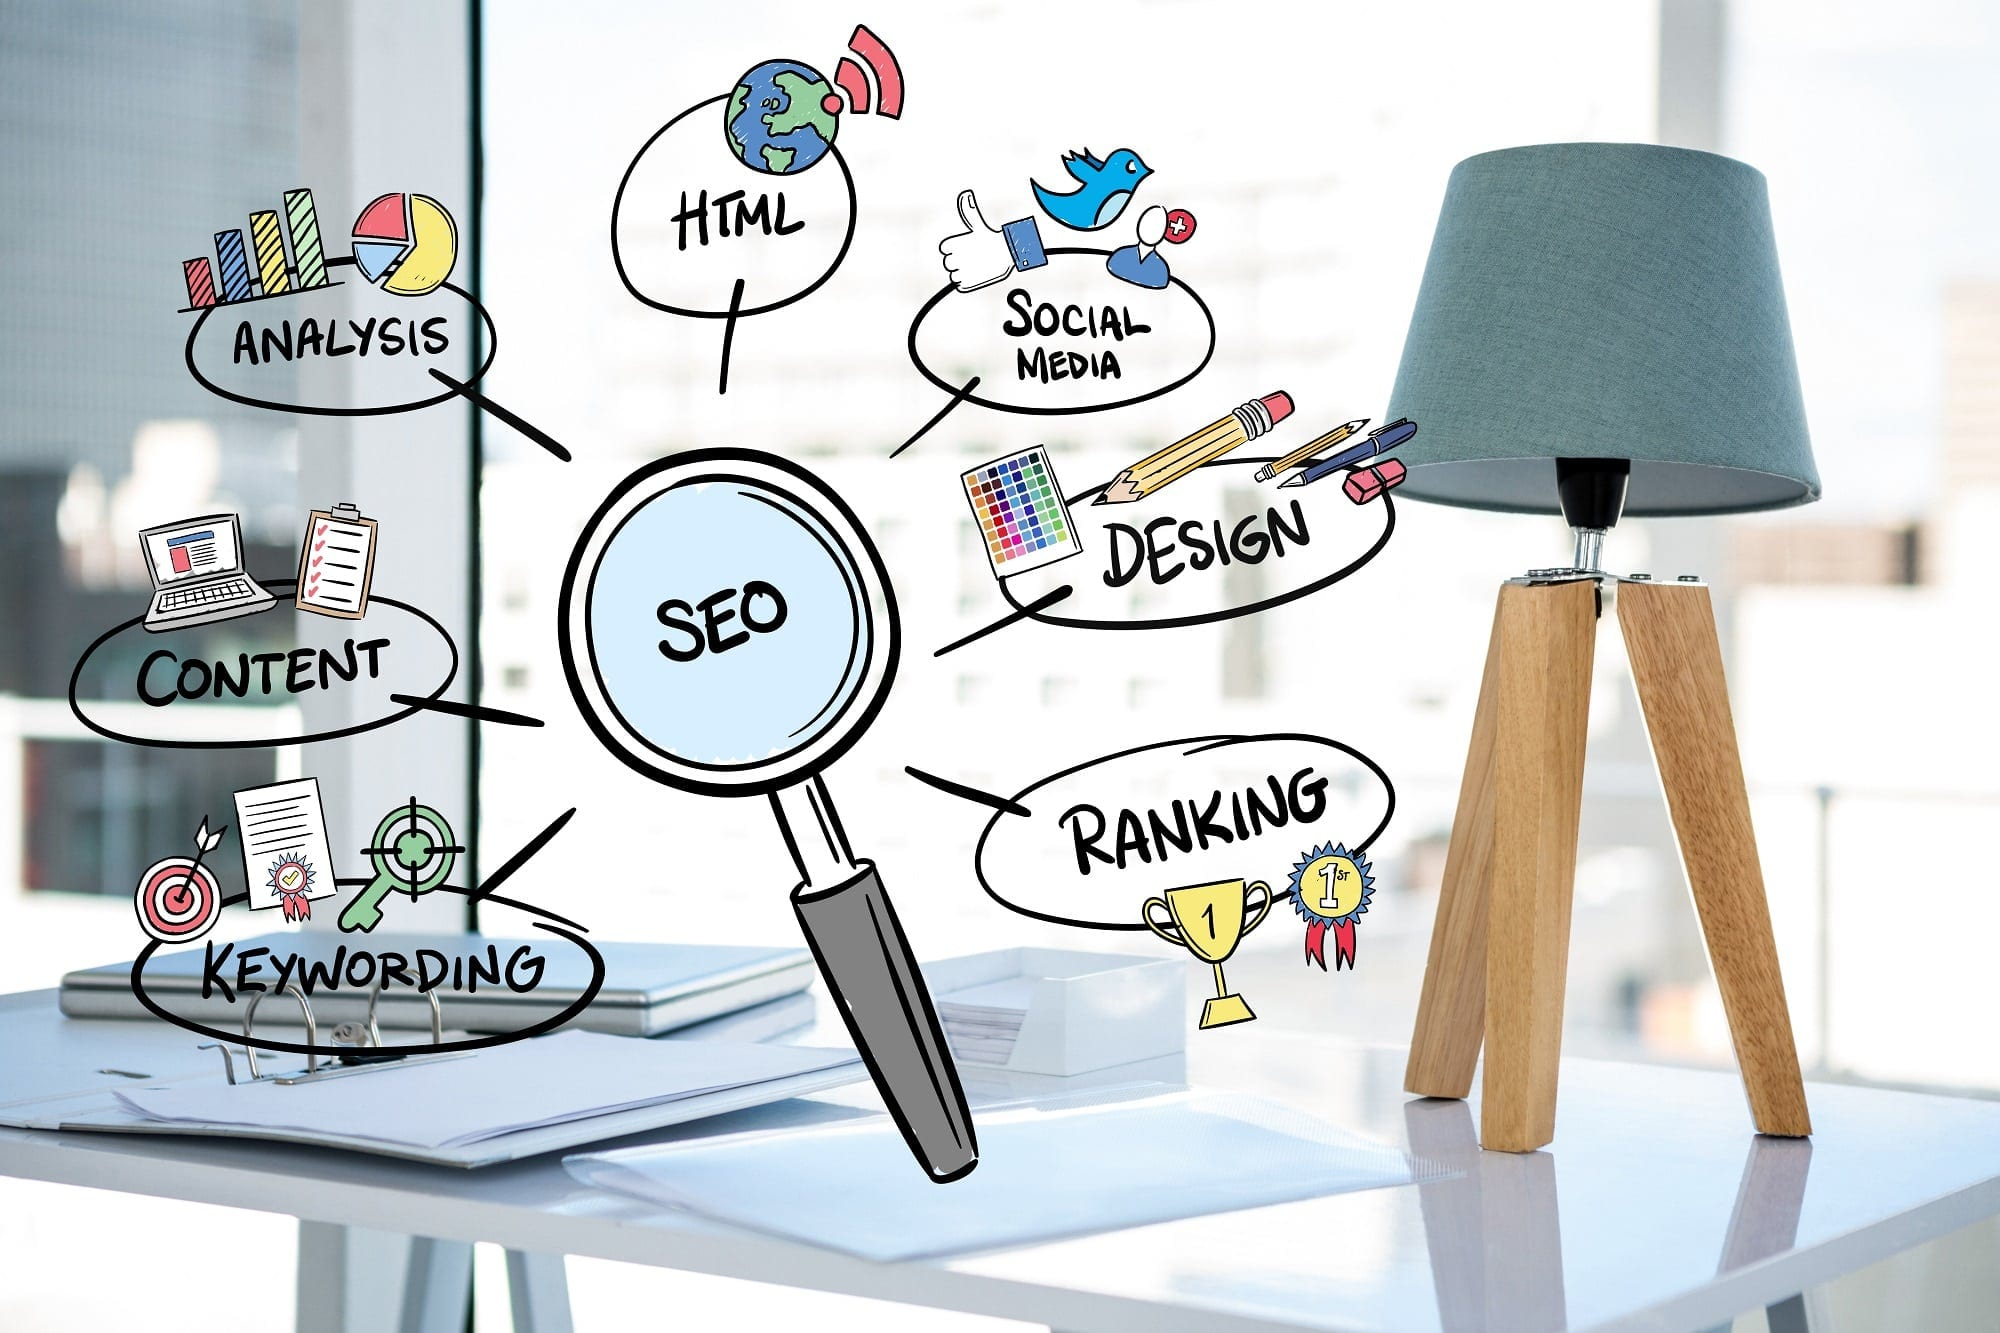 Why should Estate Agents bother about website SEO?